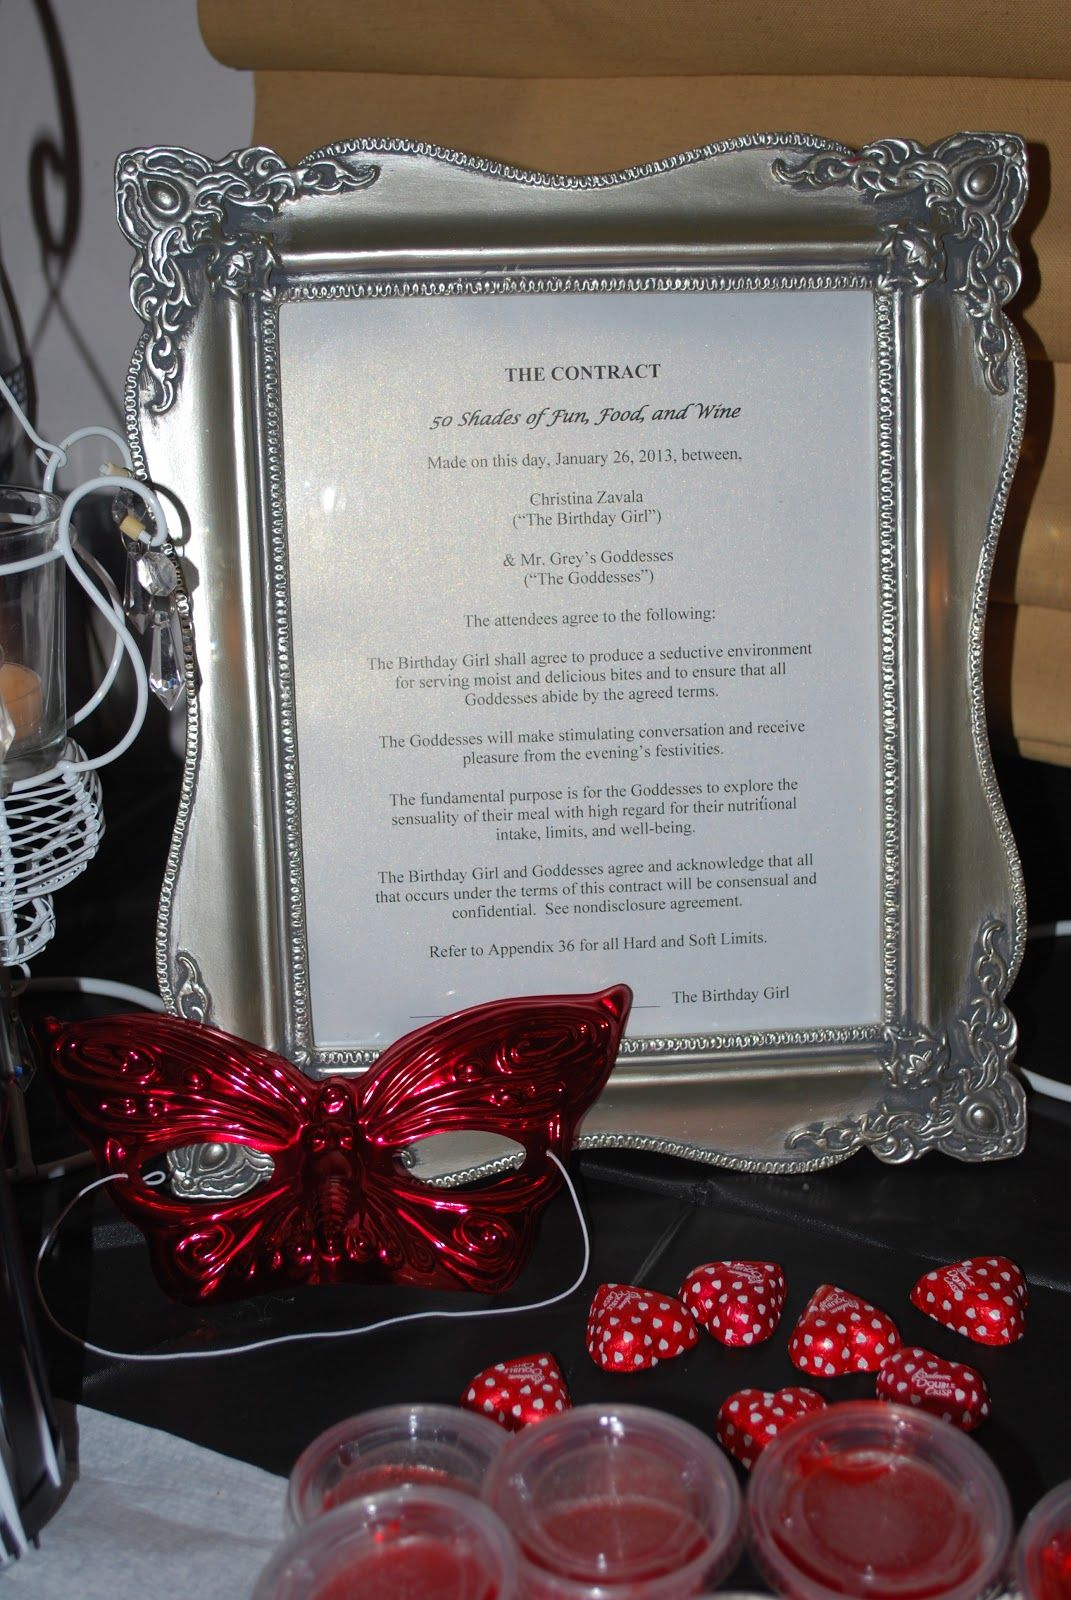 Fifty Shades Of Grey Party 1 Jpg 1 071 1 600 Pixels Fifty Shades Of Grey Fifty Shades 50 Shades Party